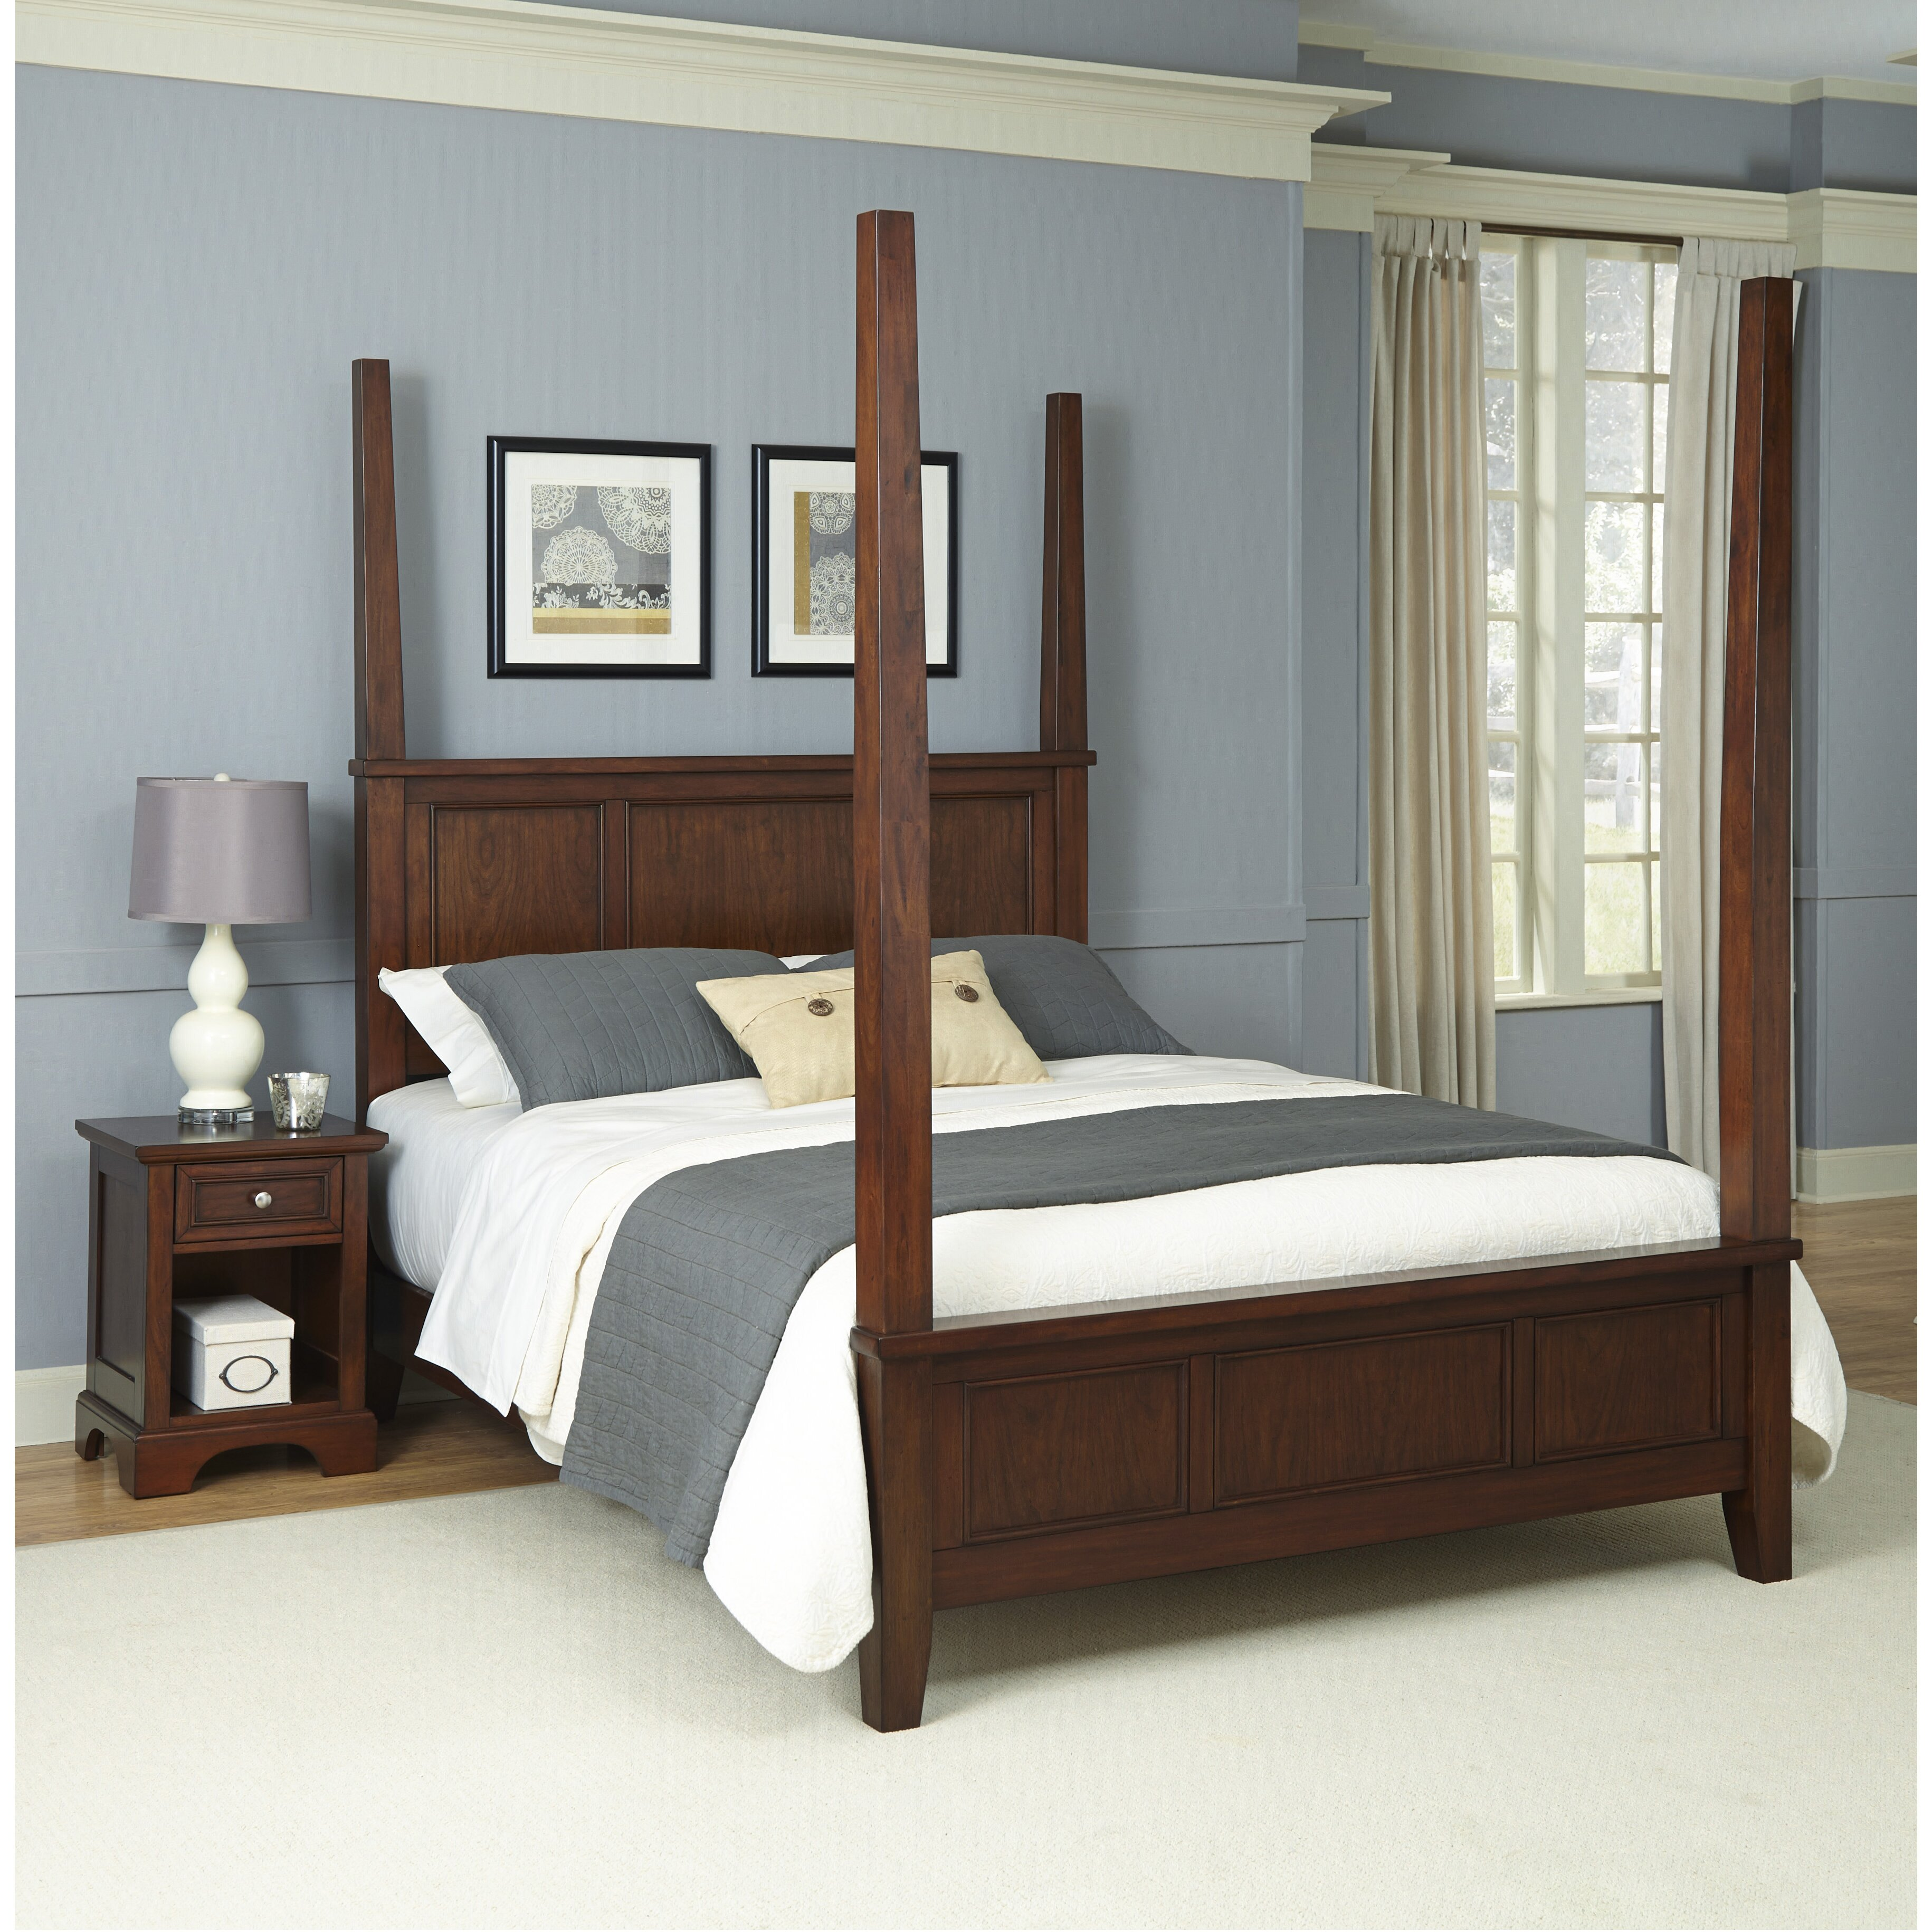 Home styles chesapeake four poster bed reviews wayfair - Beds styles pictures ...